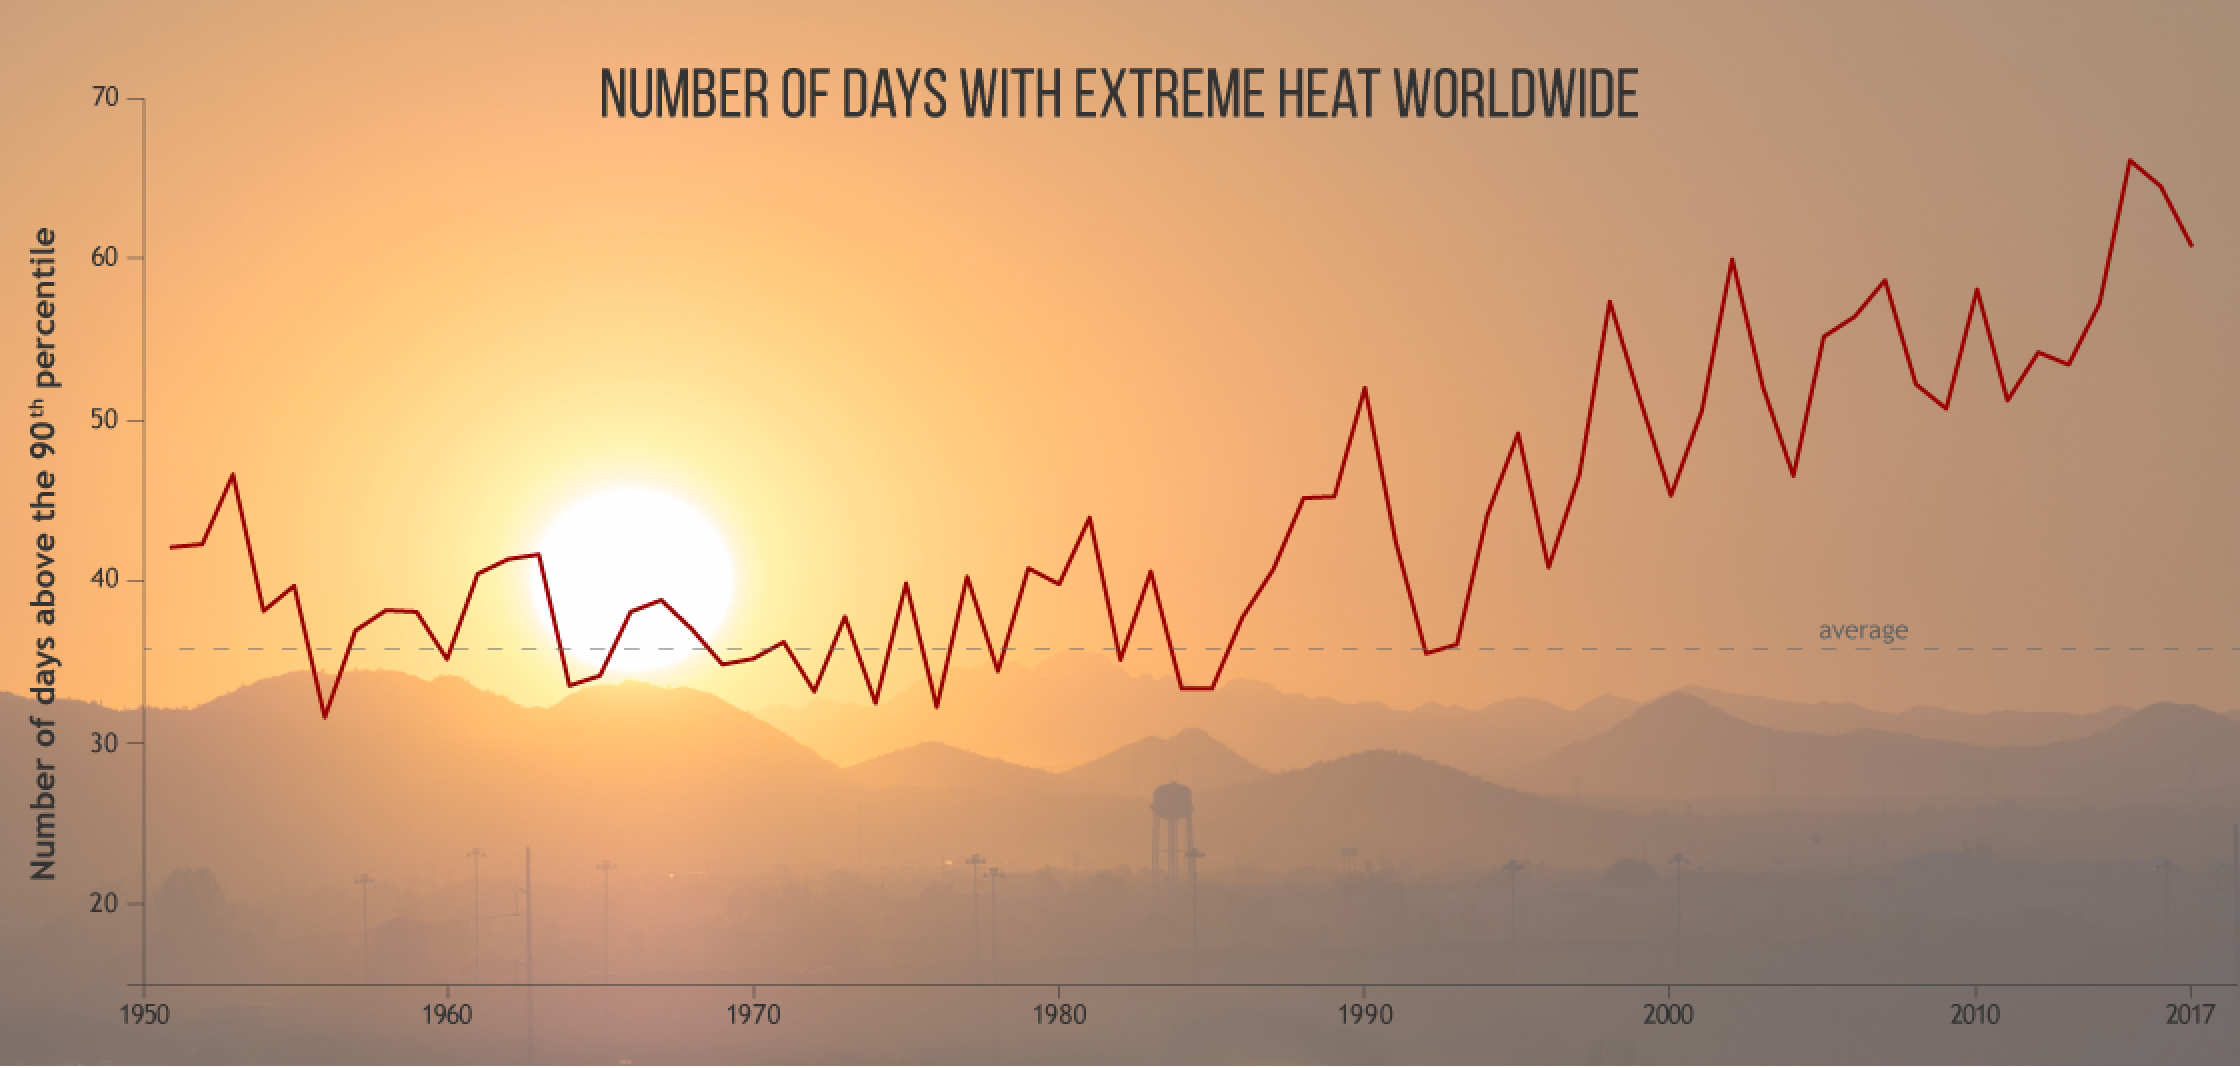 GRAPHIC-Number-of-hot-days-each-year-since-1950-relative-to-the-1961-1990-baseline_BAMS-NOAA-1125x534-Landscape.png